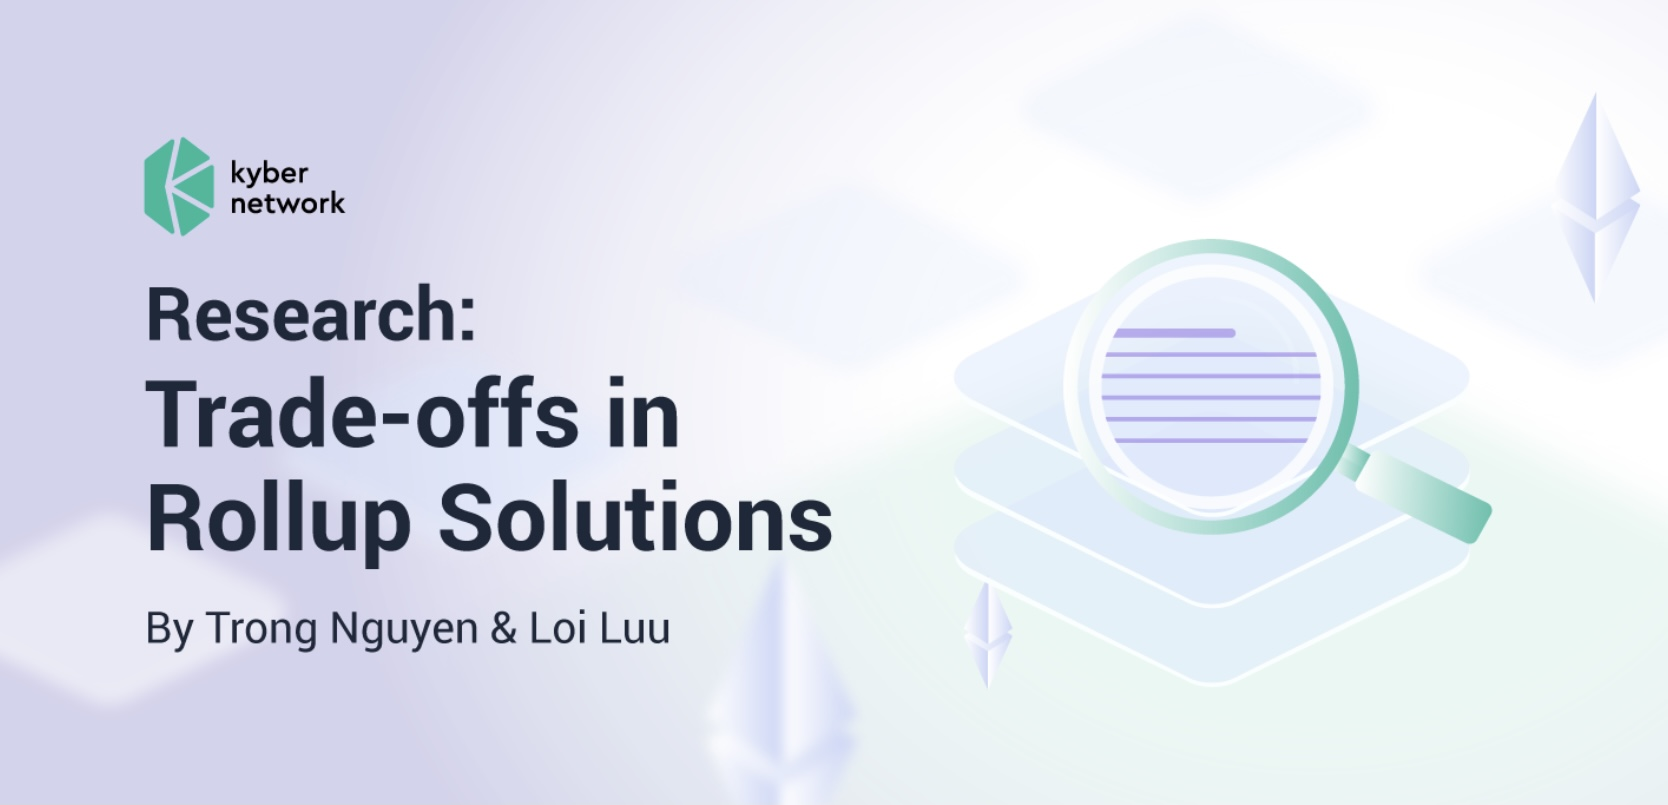 Kyber Research: Trade-offs in Rollup Solutions